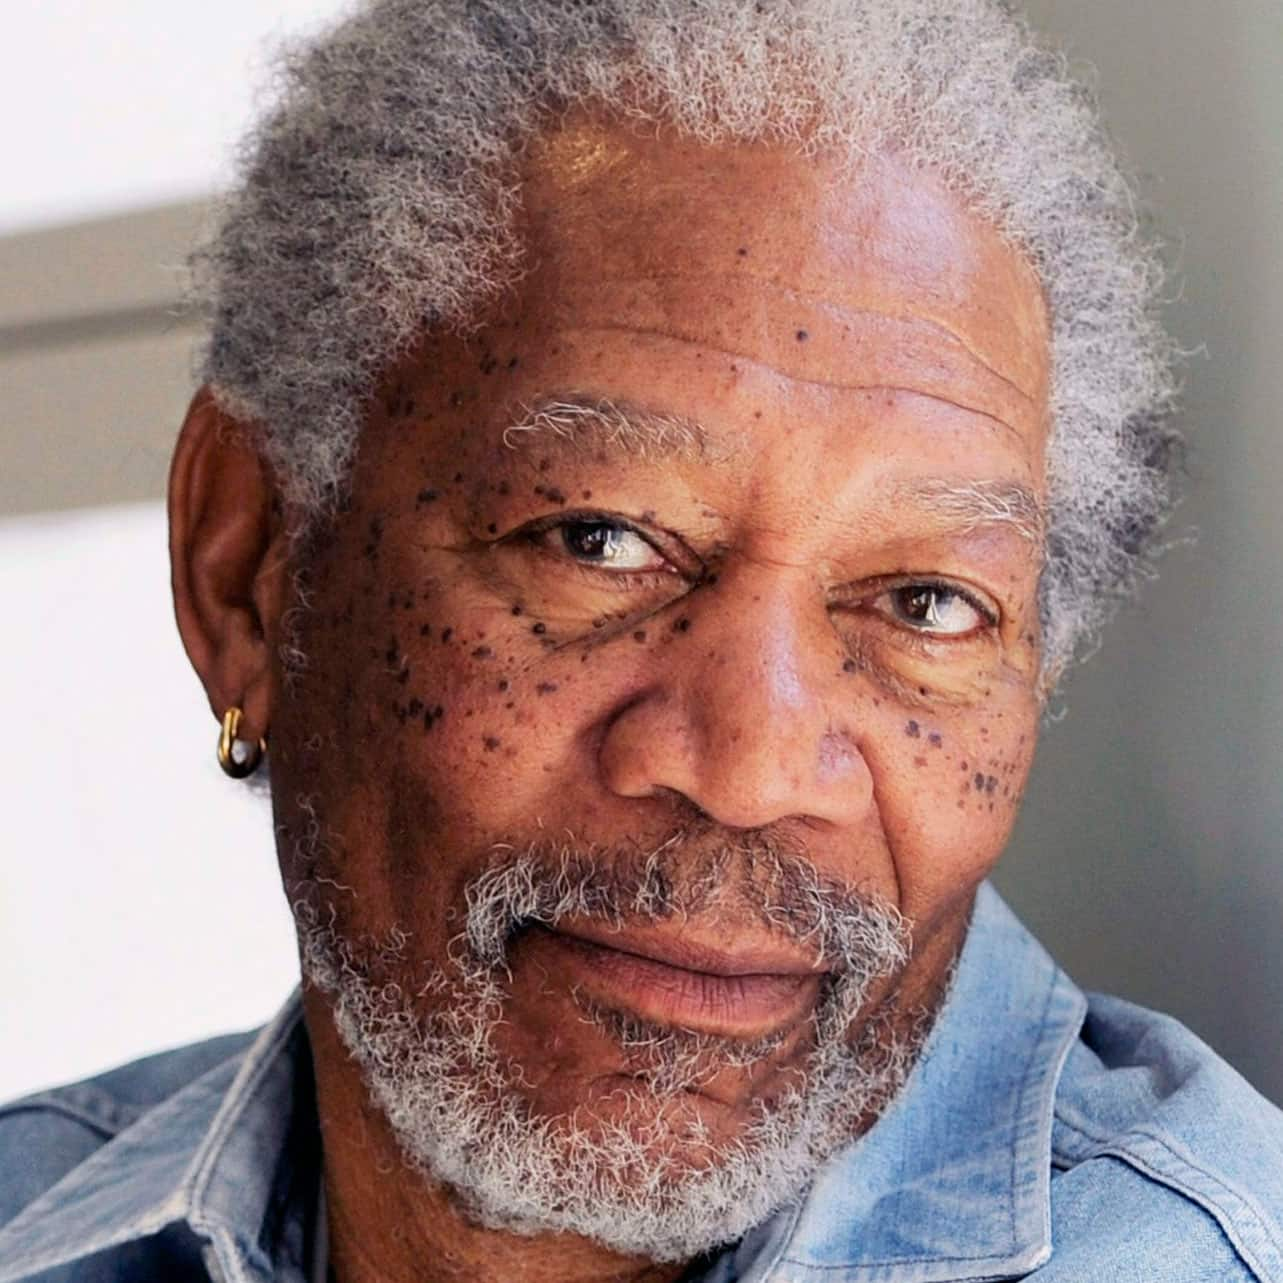 Angelique Hennessy george stroumboulopoulos tonight | morgan freeman